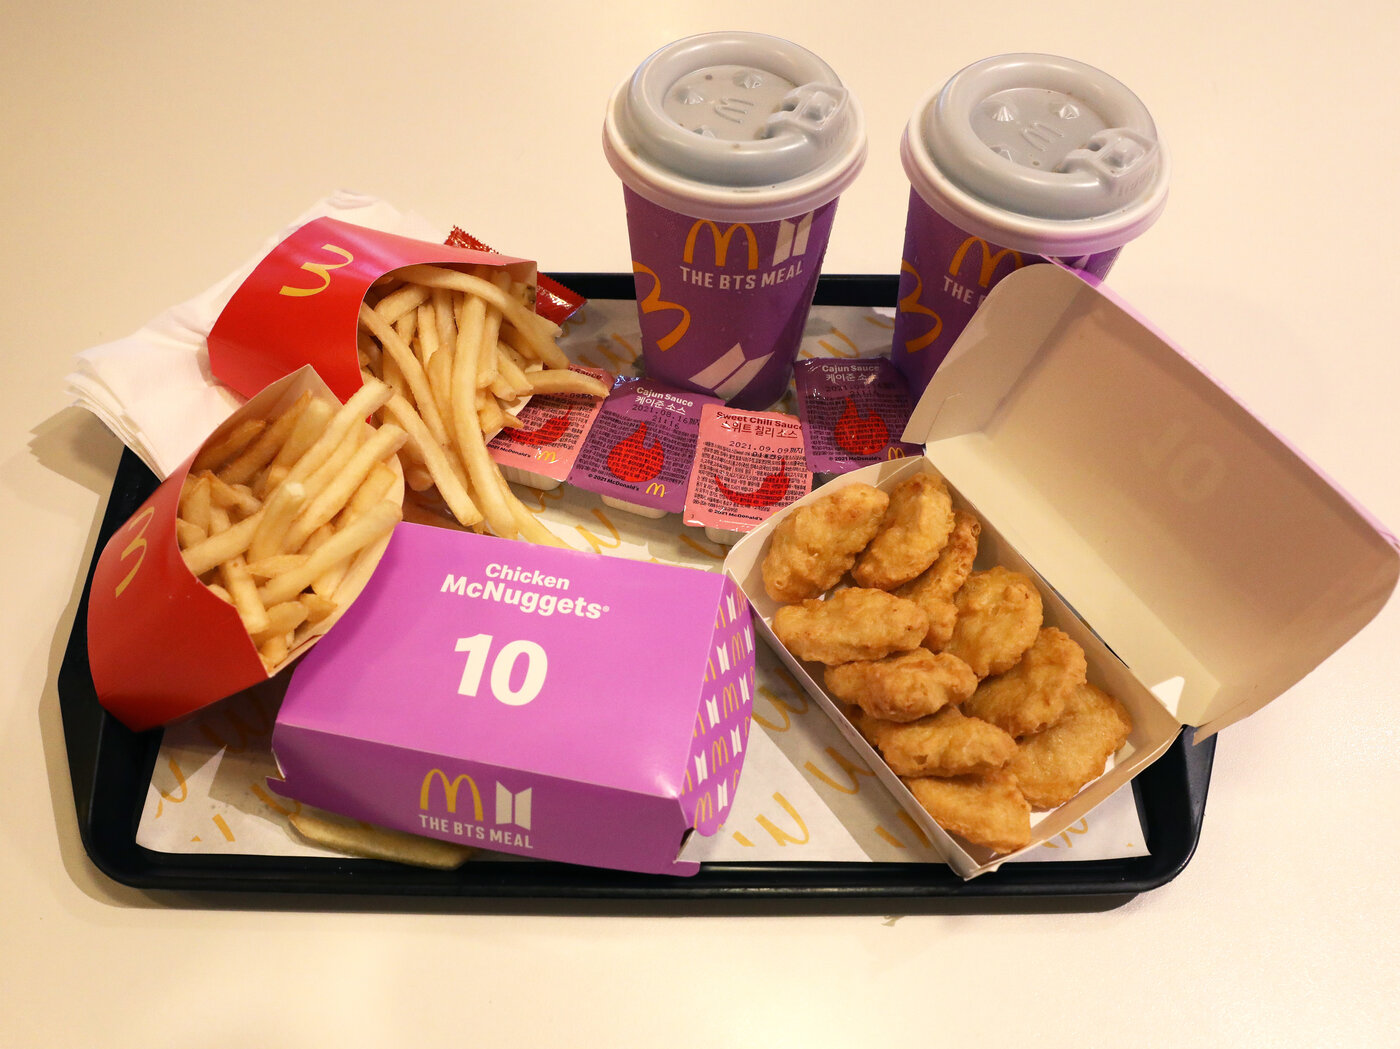 McDonald's BTS meal shown in Seoul, South Korea.